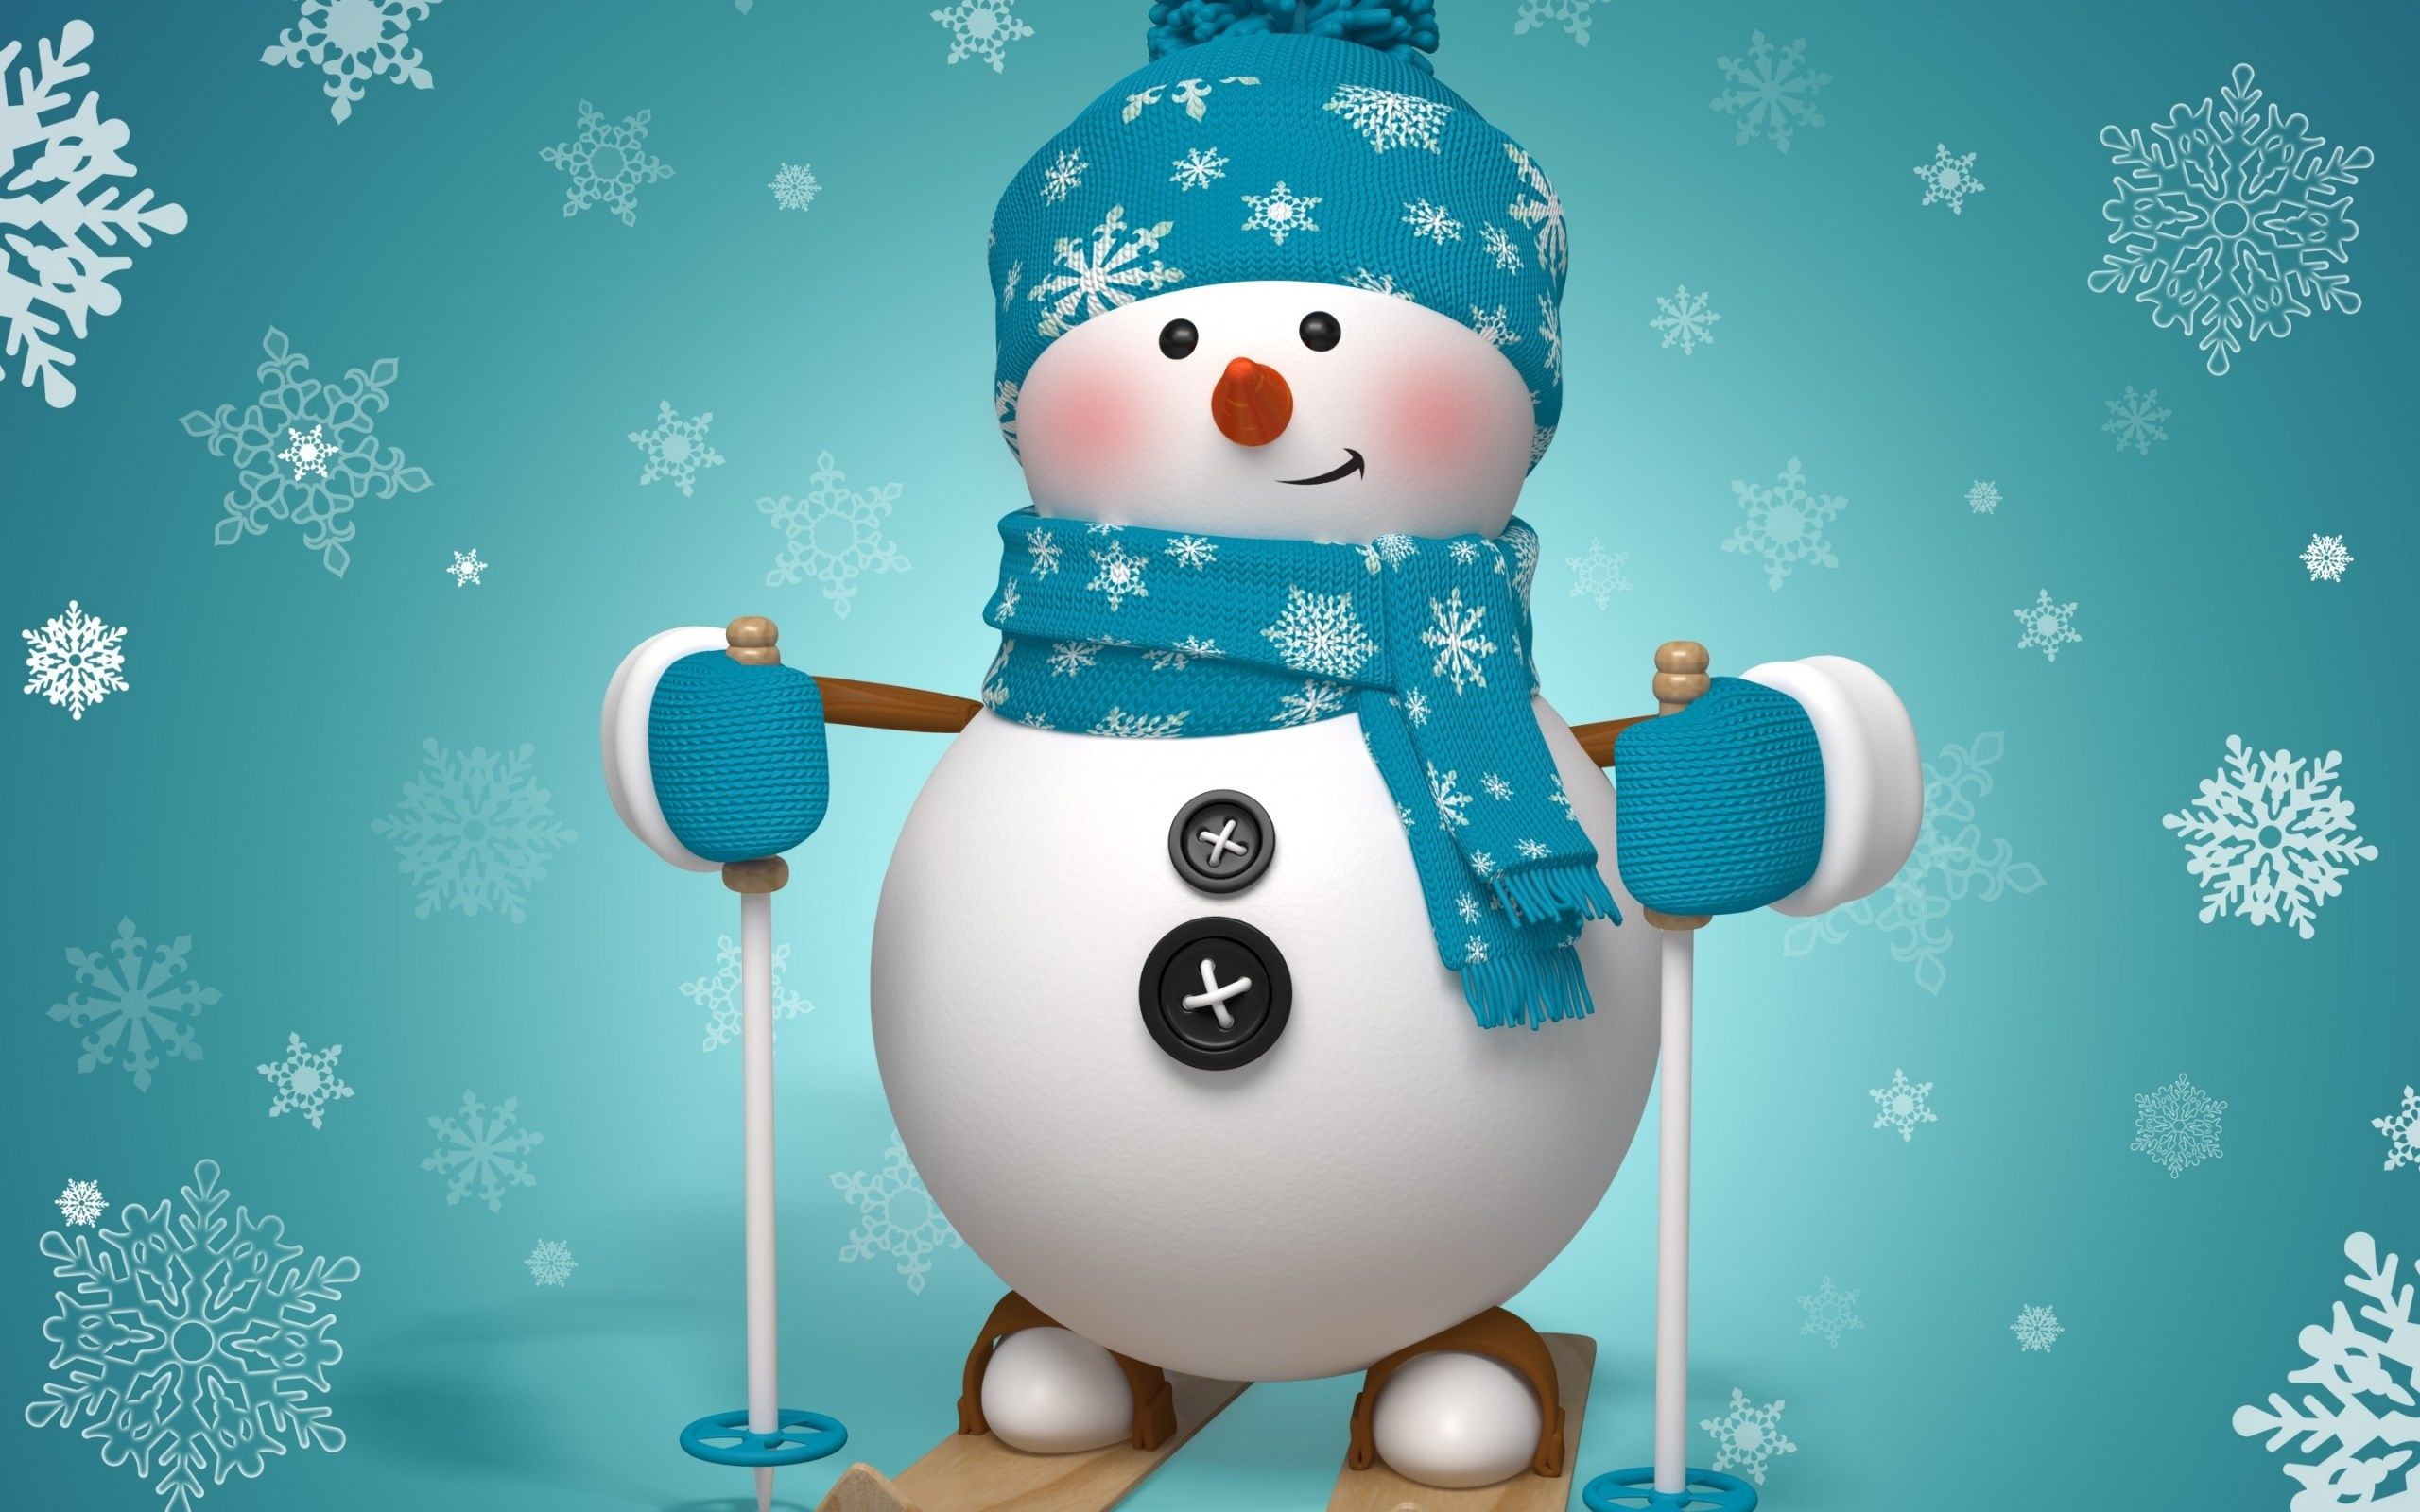 Widescreen Wallpaper Snowman